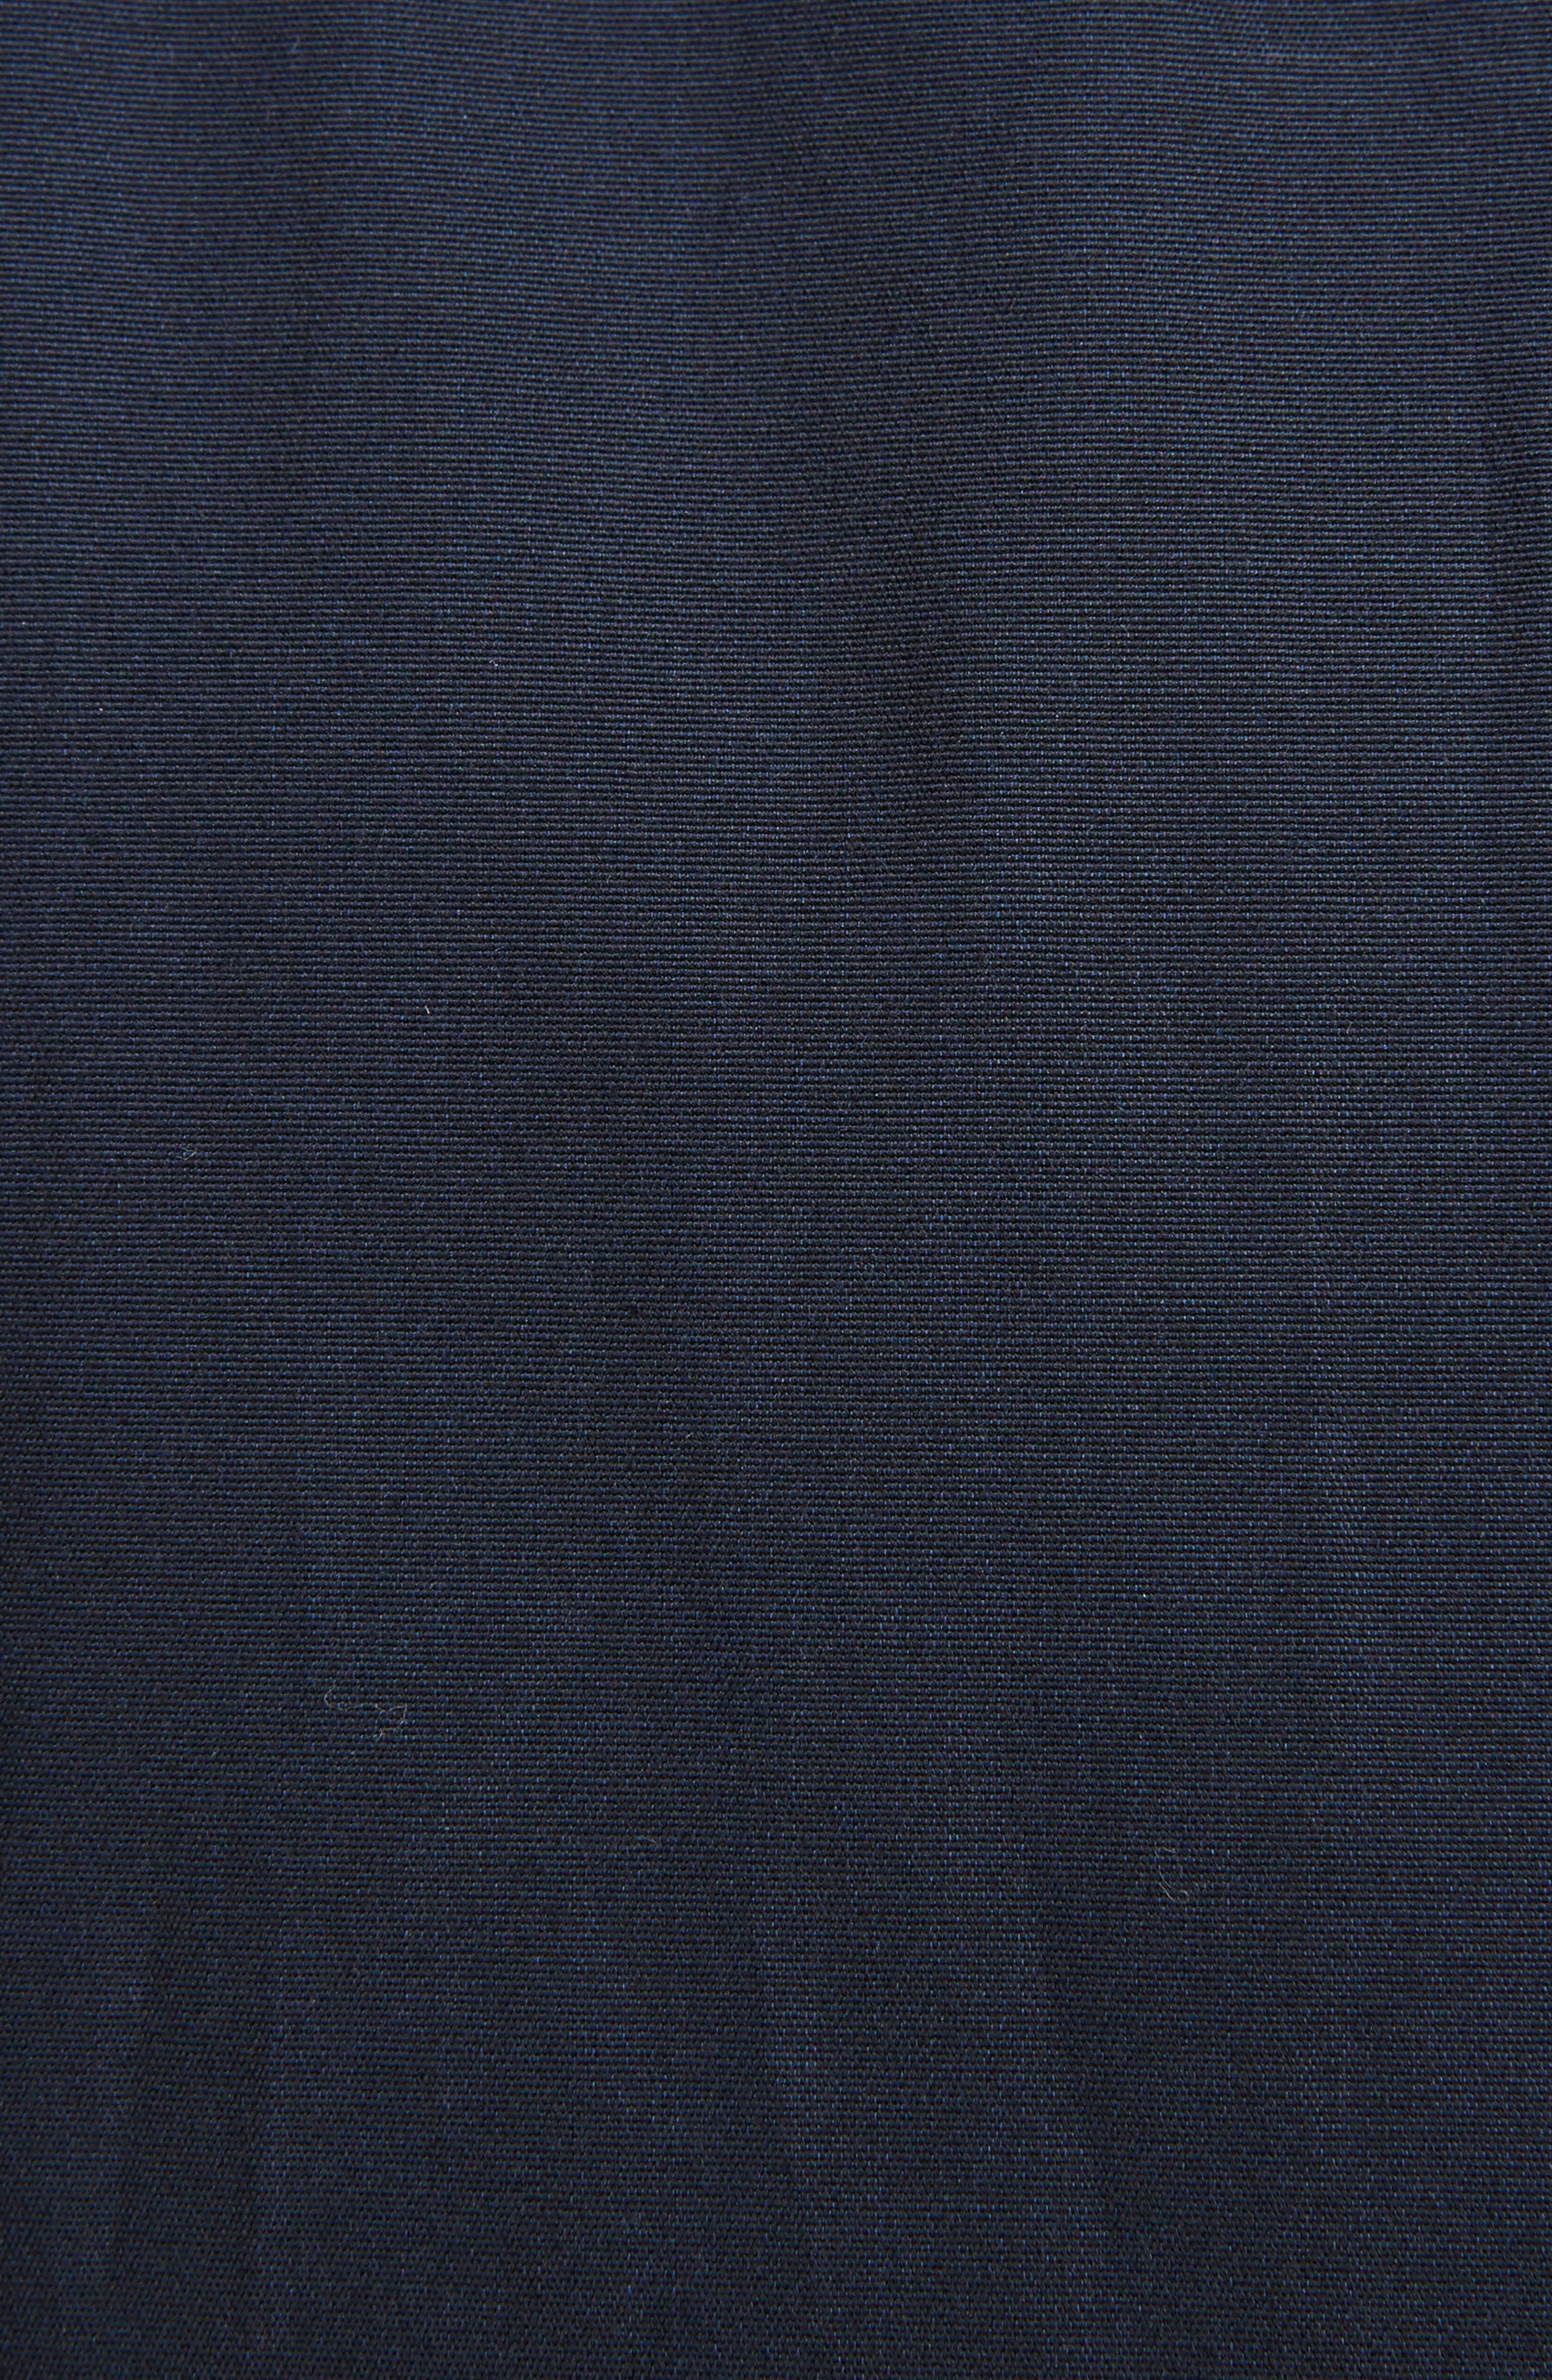 Zigzag Embroidered Cotton & Silk Sport Shirt,                             Alternate thumbnail 5, color,                             Navy